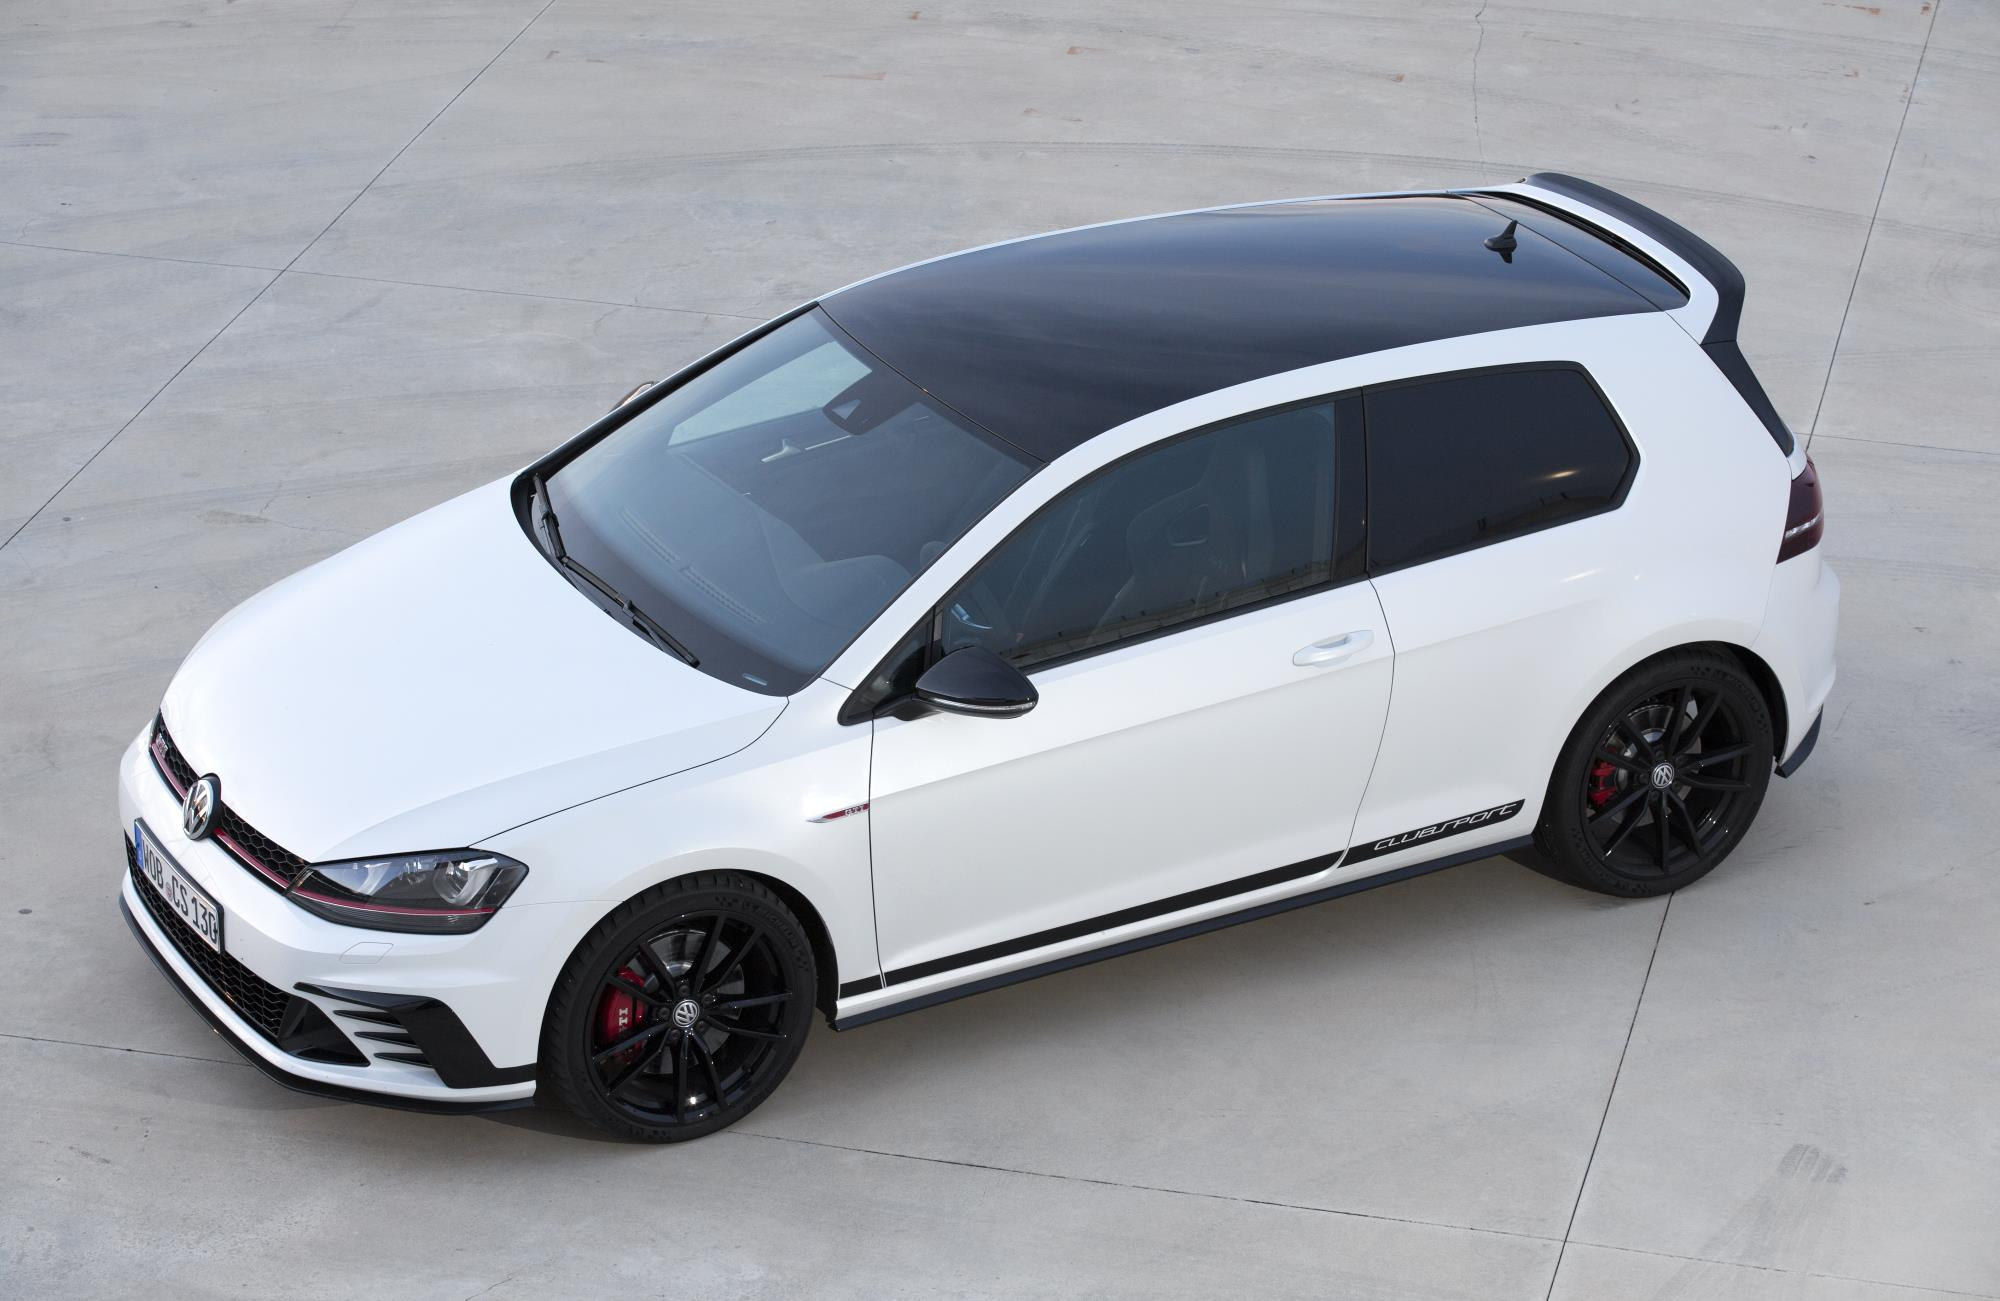 vw to debut golf gti clubsport s at w rthersee 2016 gtspirit. Black Bedroom Furniture Sets. Home Design Ideas